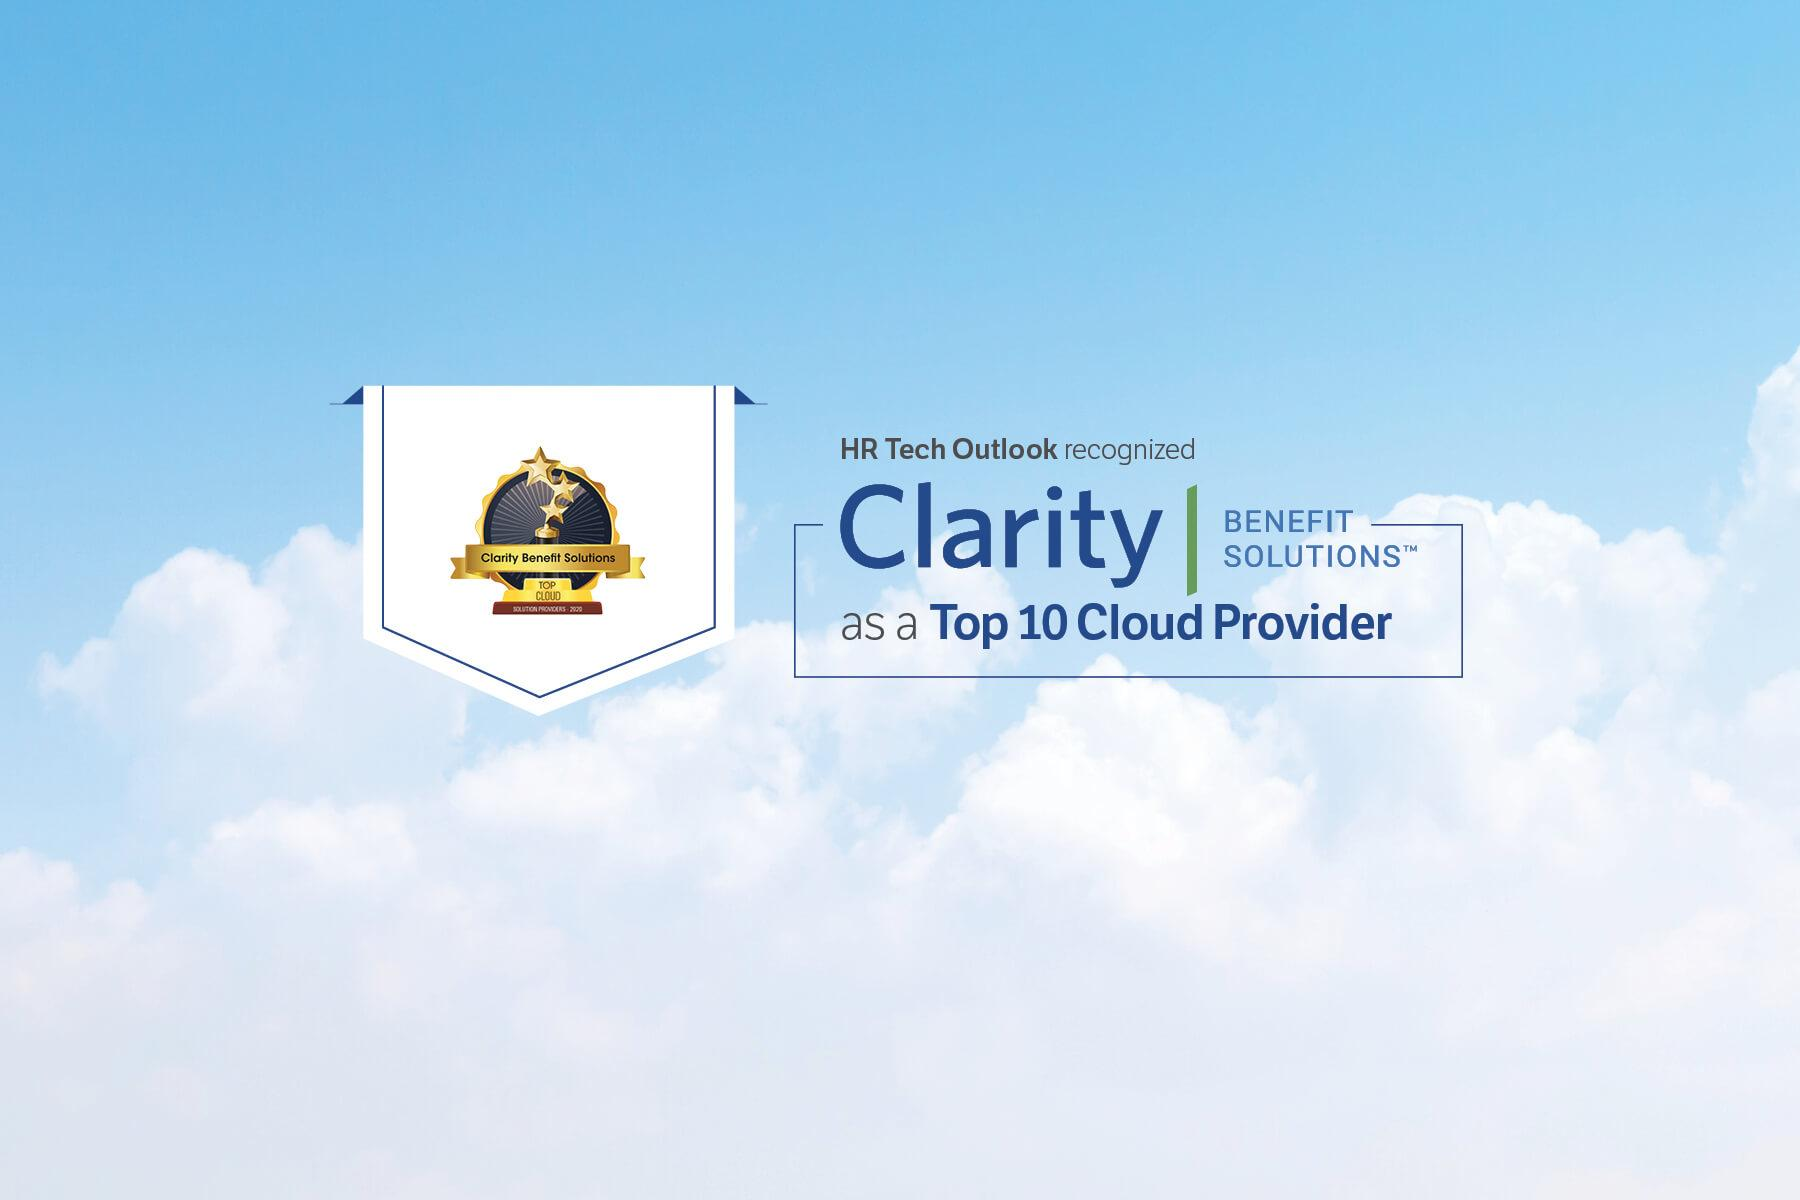 Top 10 Cloud Provider